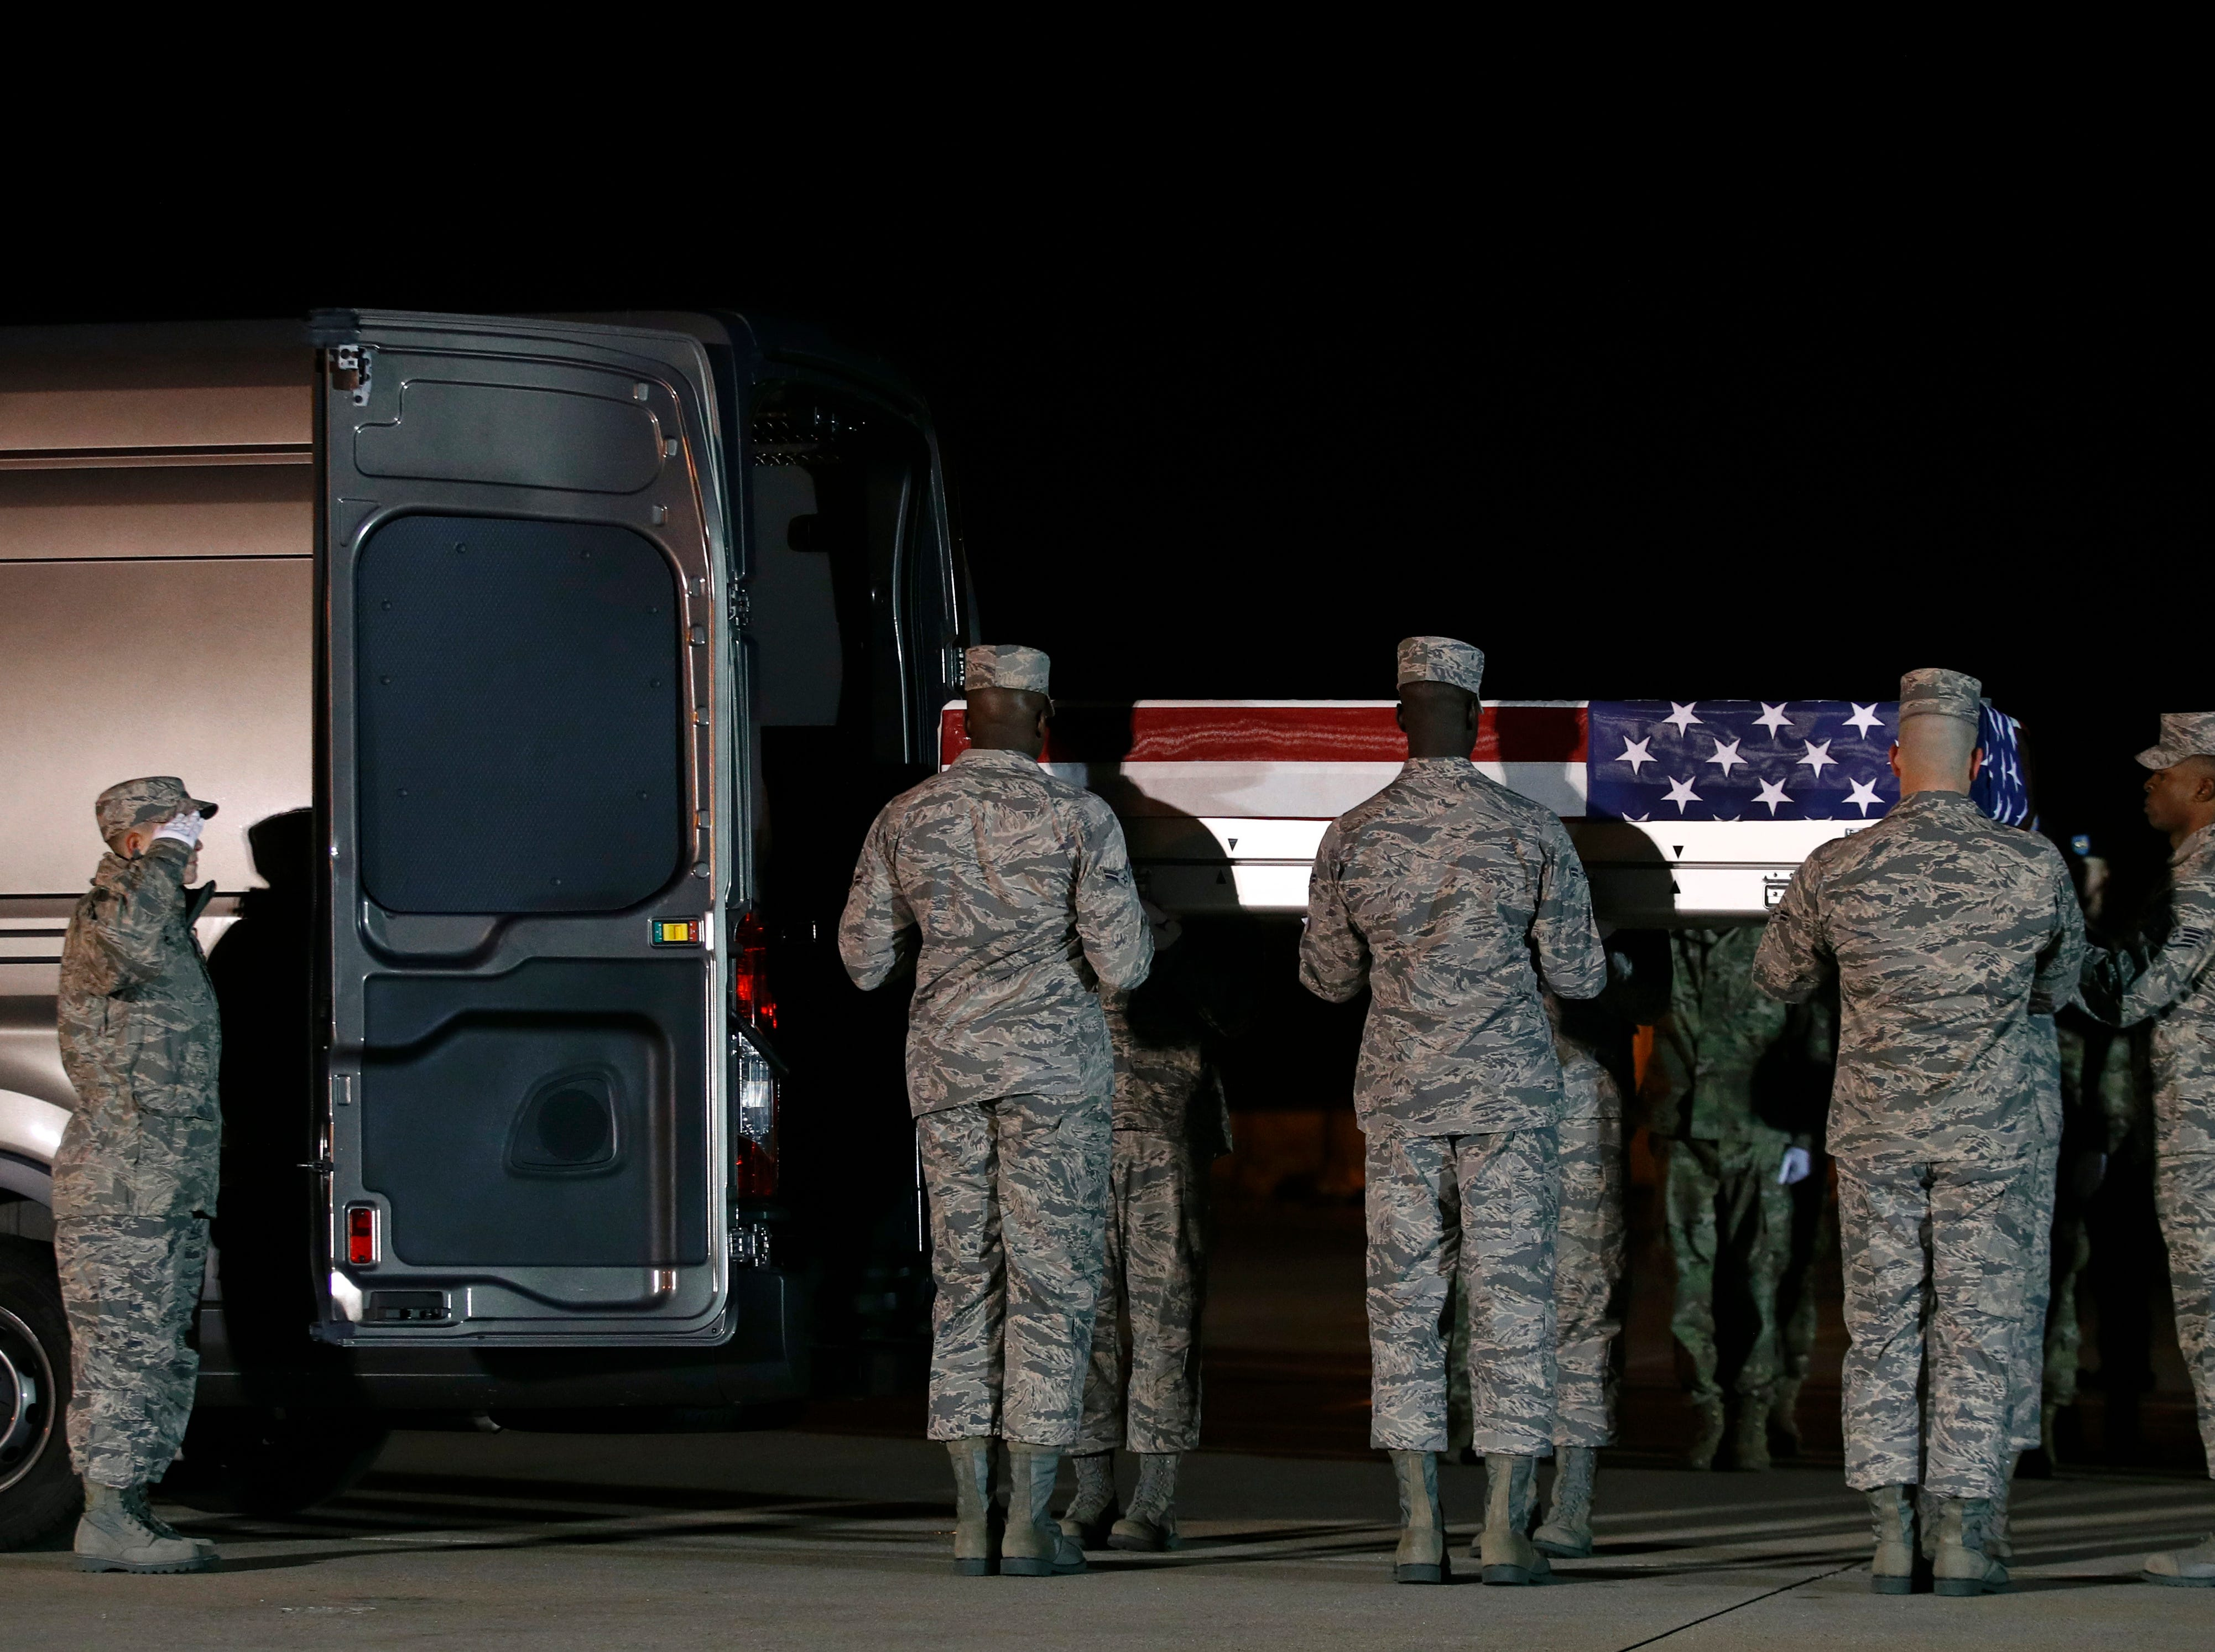 A U.S. Air Force carry team prepares to place a transfer case containing the remains of Staff Sgt. Dylan J. Elchin into a vehicle, Friday, Nov. 30, 2018, at Dover Air Force Base, Del. According to the Department of Defense, Elchin, 25, of Hookstown, Pa., was killed Nov. 27, 2018, by a roadside bomb in Andar, Ghazni Province, Afghanistan.